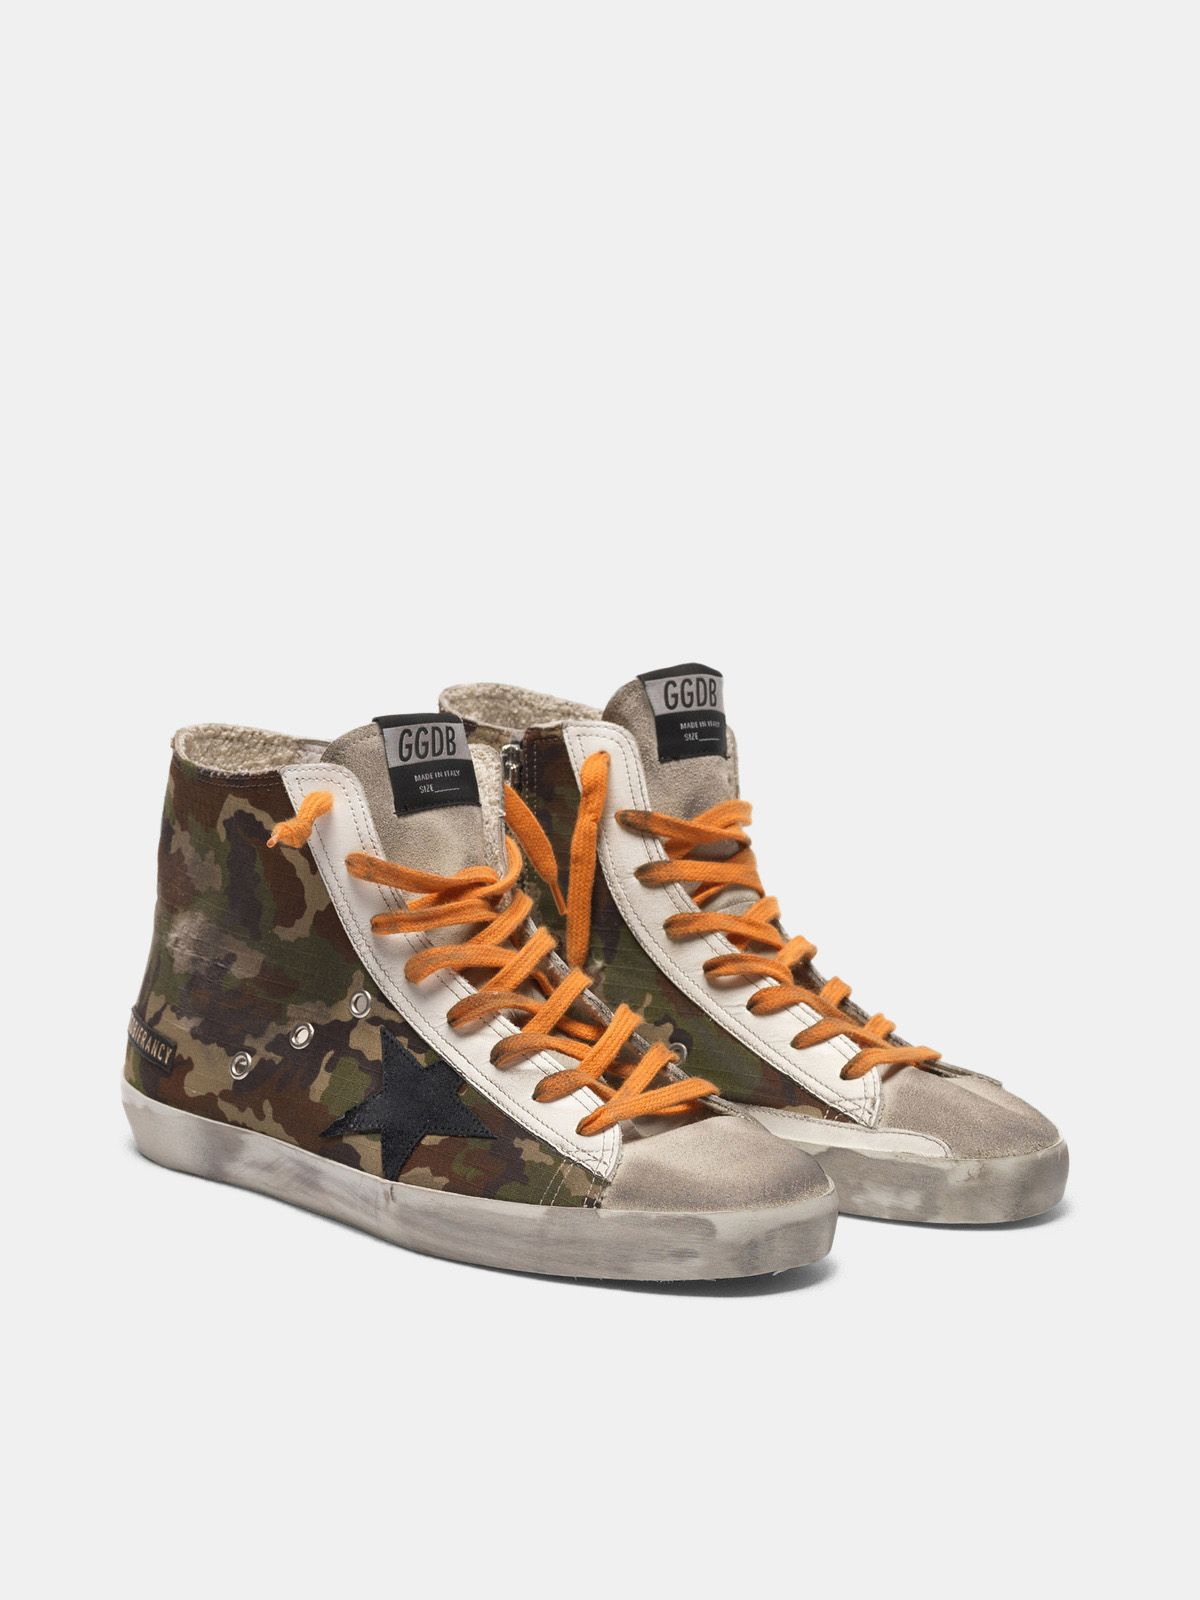 Golden Goose - Francy sneakers with pixel camouflage pattern in